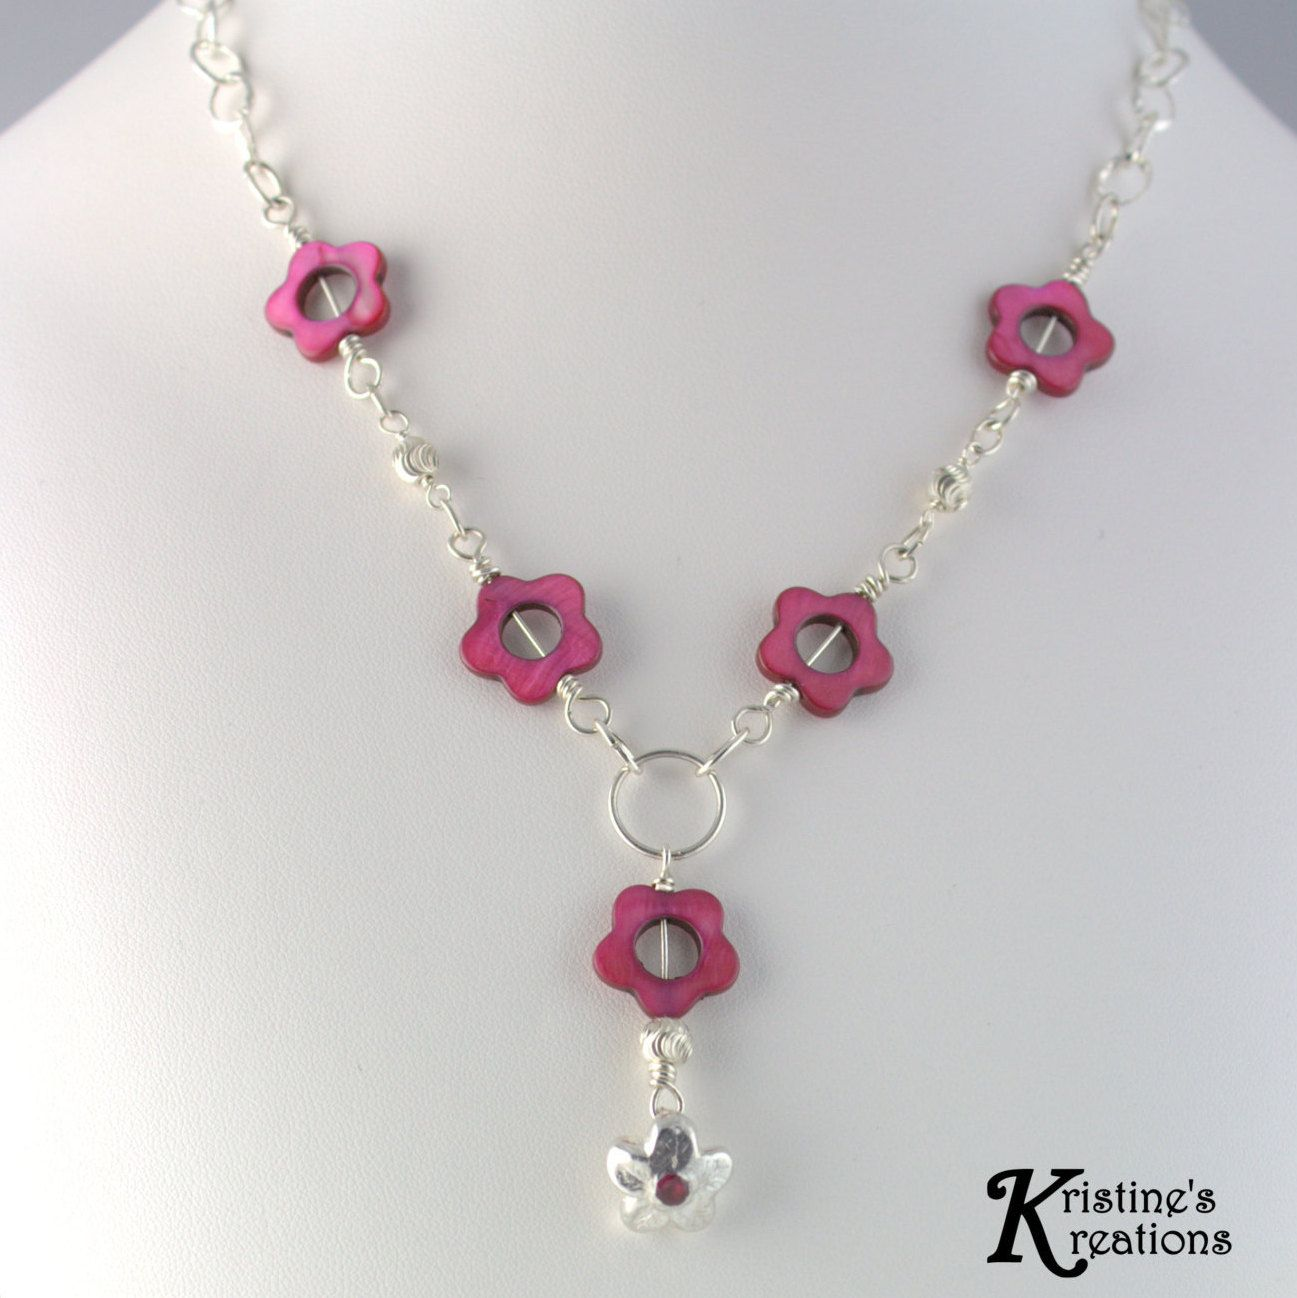 Fuchsia Flower Necklace Fine Sliver Flower With Ruby Sone Setting Y Drop Mother Of Pearl Fuchsia Flower Bead With Fine Silver Flower Fuchsia Flower Silver Metal Clay Flower Necklace